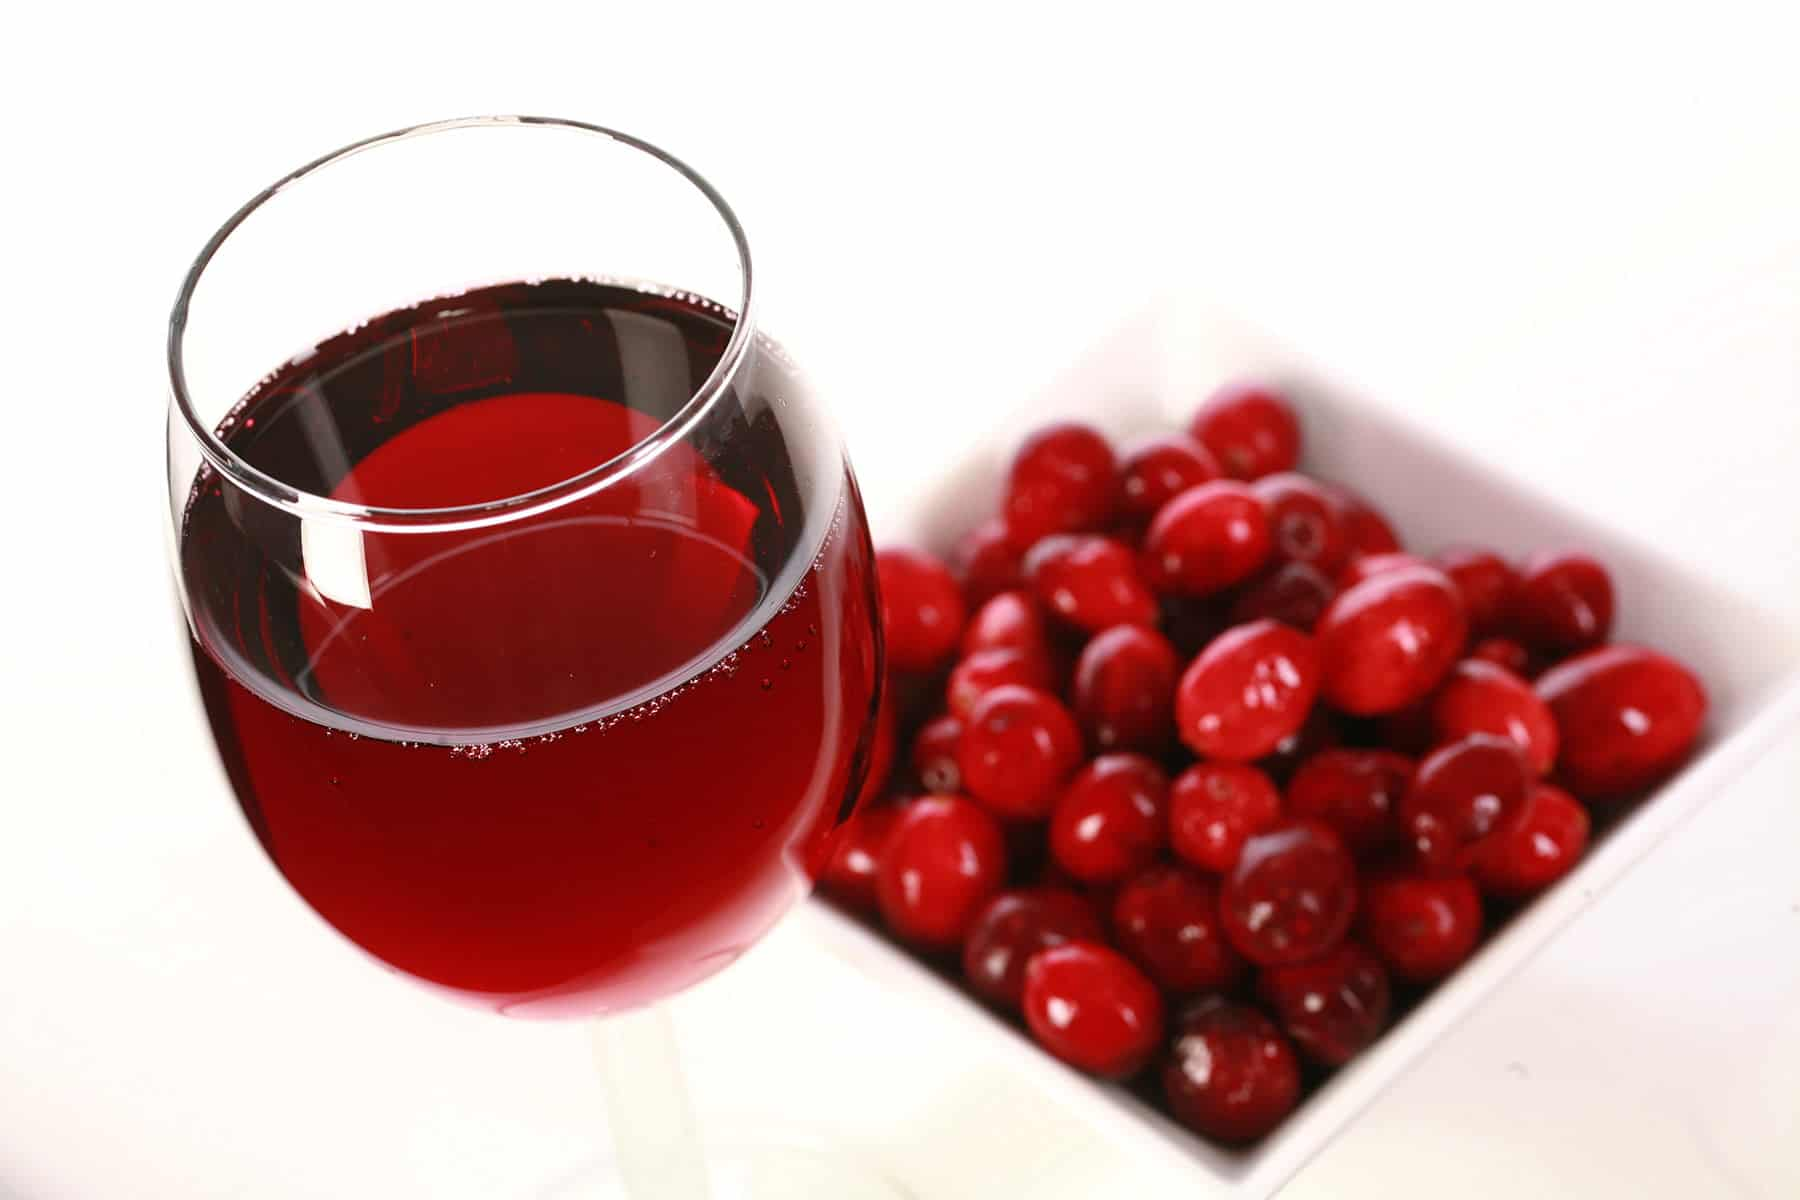 A glass of red wine - made with this cranberry wine recipe - is pictured next to a small bowl of fresh cranberries, against a white background.